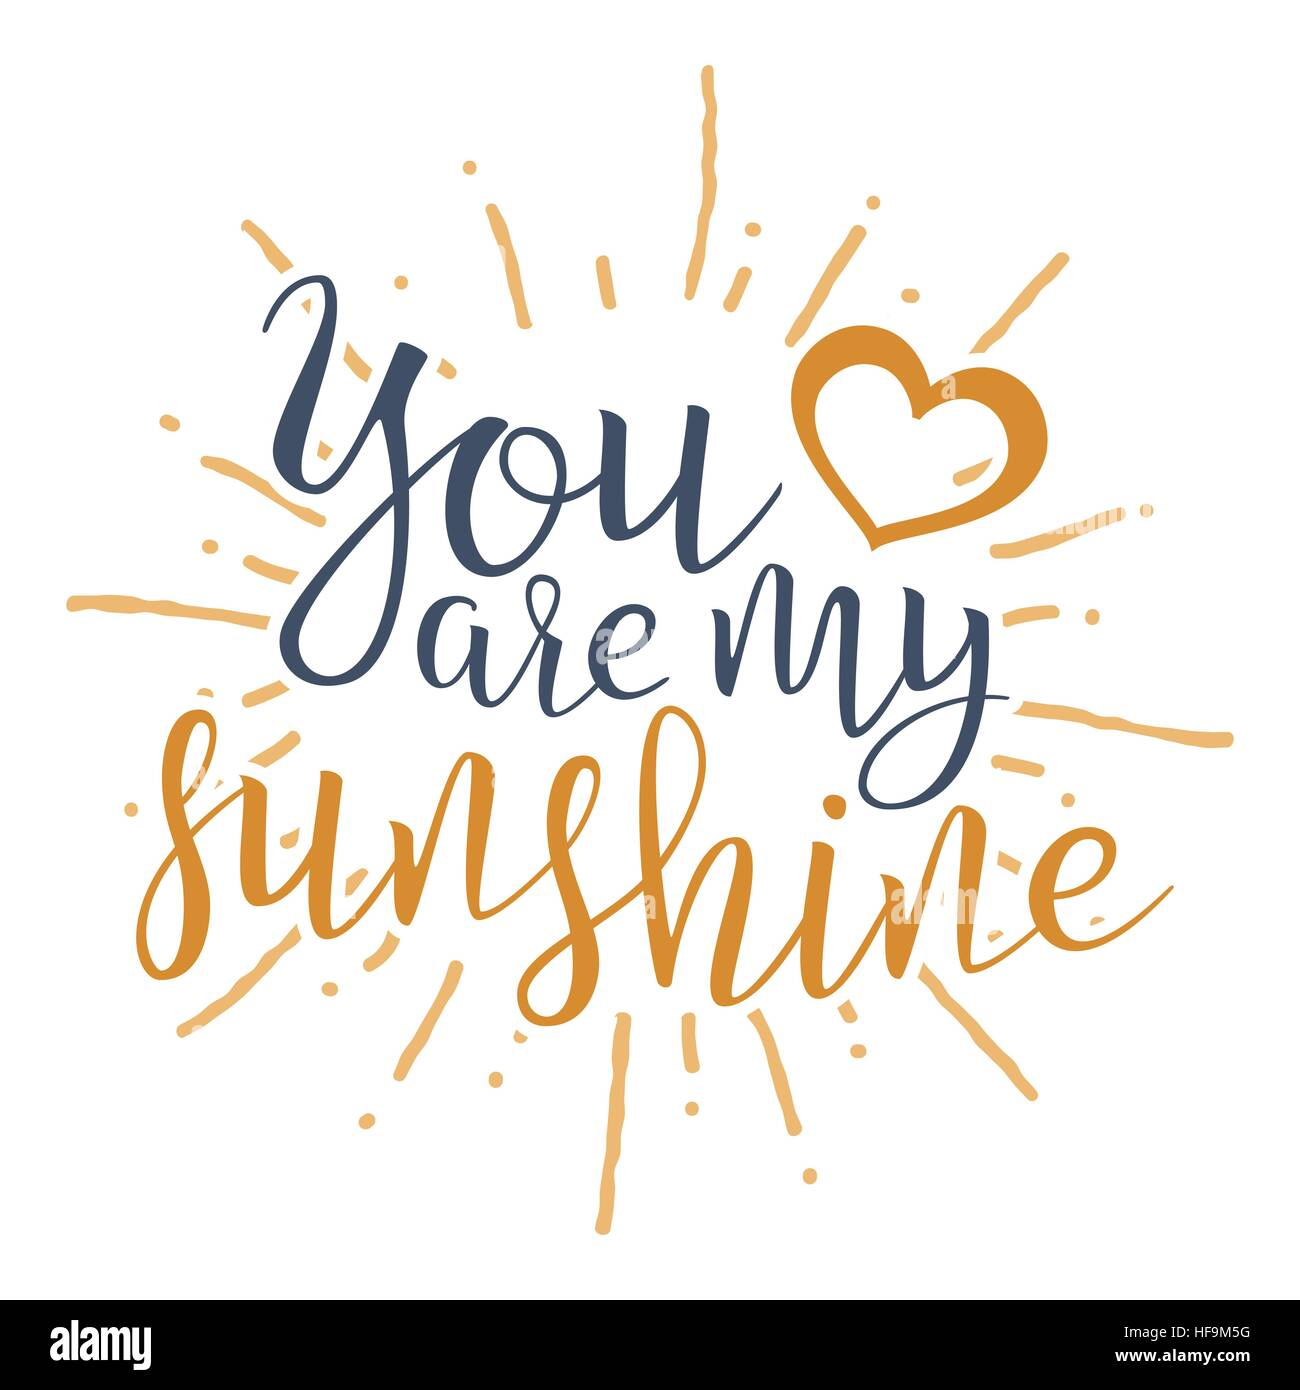 You Are My Sunshine Handwritten Lettering Quote About Love For